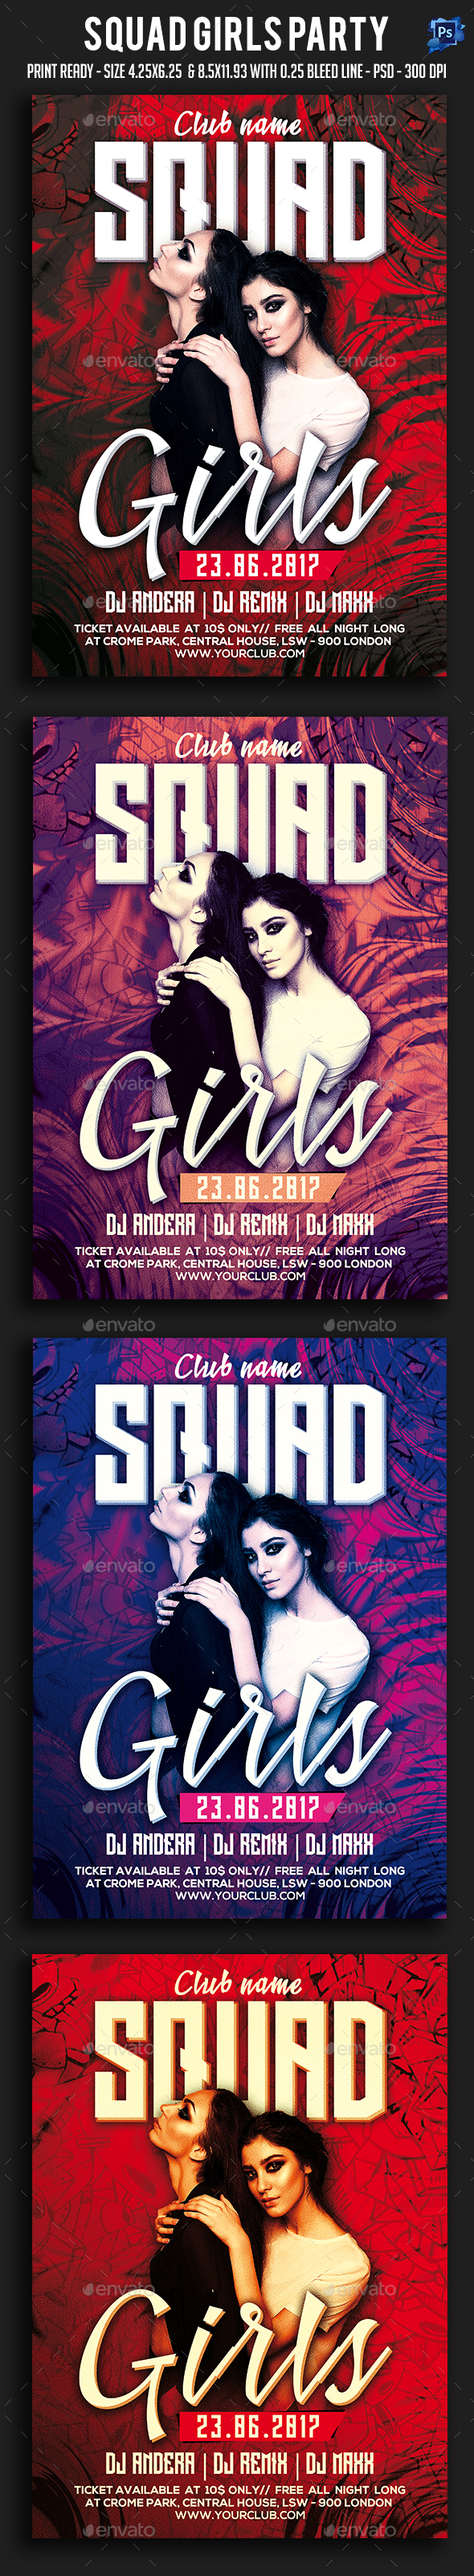 Squad Girls Party Flyer - Clubs & Parties Events